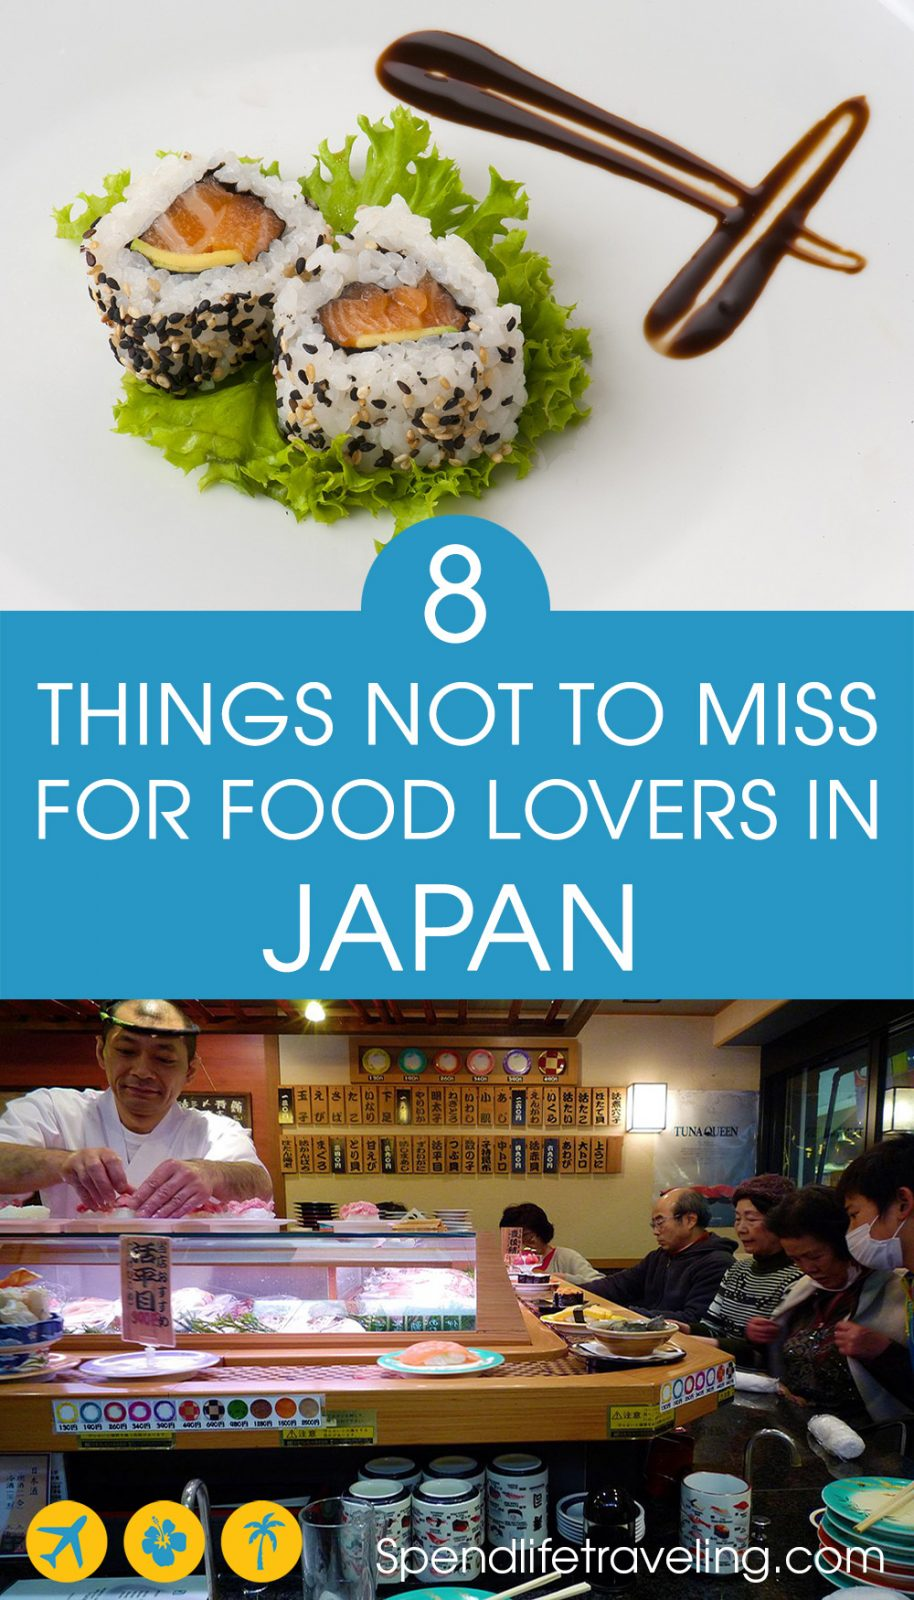 Tips for food lovers traveling to Japan. If you love food, Japan is a great place to visit. Check out what not to miss when it comes to culinary experiences in #Japan. #Japanesefood #foodtravel